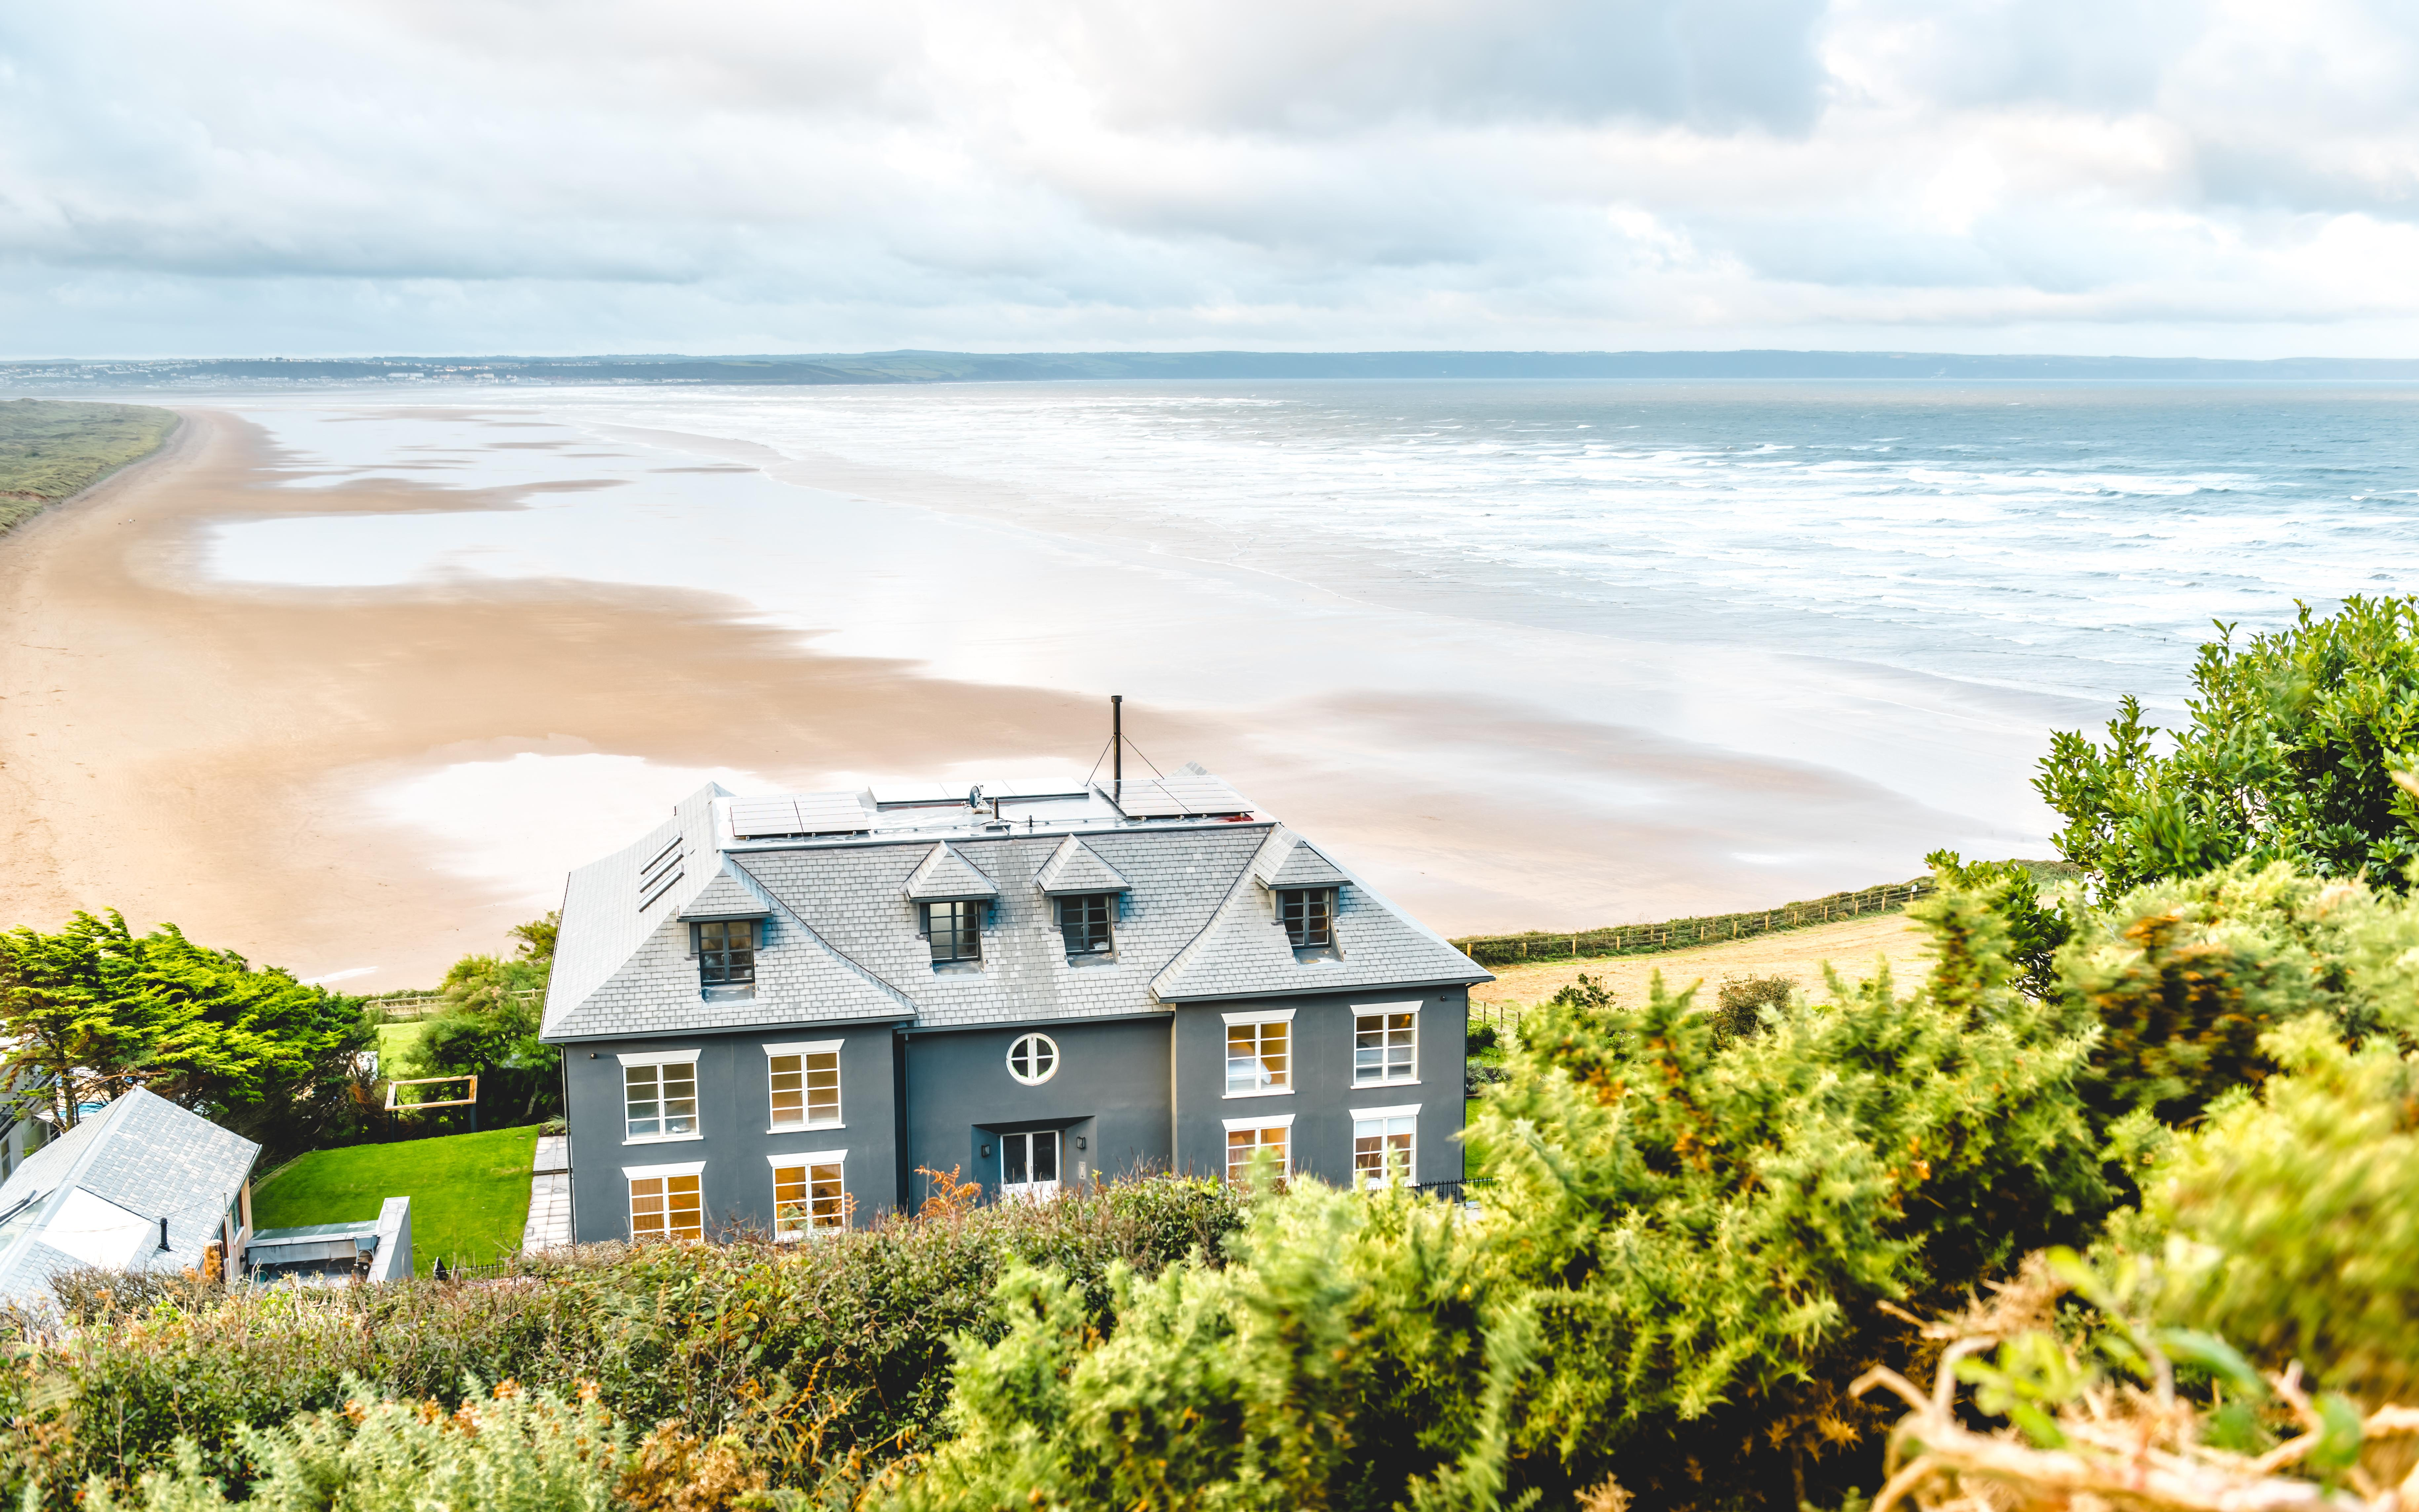 <p>Whisk your family away to Saunton Sands, a wonderful stretch of coastline in North Devon. The waves are great for surfing, and there are plenty of excellent trails nearby for dog walks. Newly-opened Chalet Saunton has direct beach access and offers a range of family-friendly activities, including surf lessons, horseback riding, cycling and fishing. There is currently an Easter offer of seven nights for the price of five in a three-bedroom apartment, which costs from £60 per person per night, based on a family of six sharing, until April 16. <em>[Photo: Chalet Saunton]</em> </p>